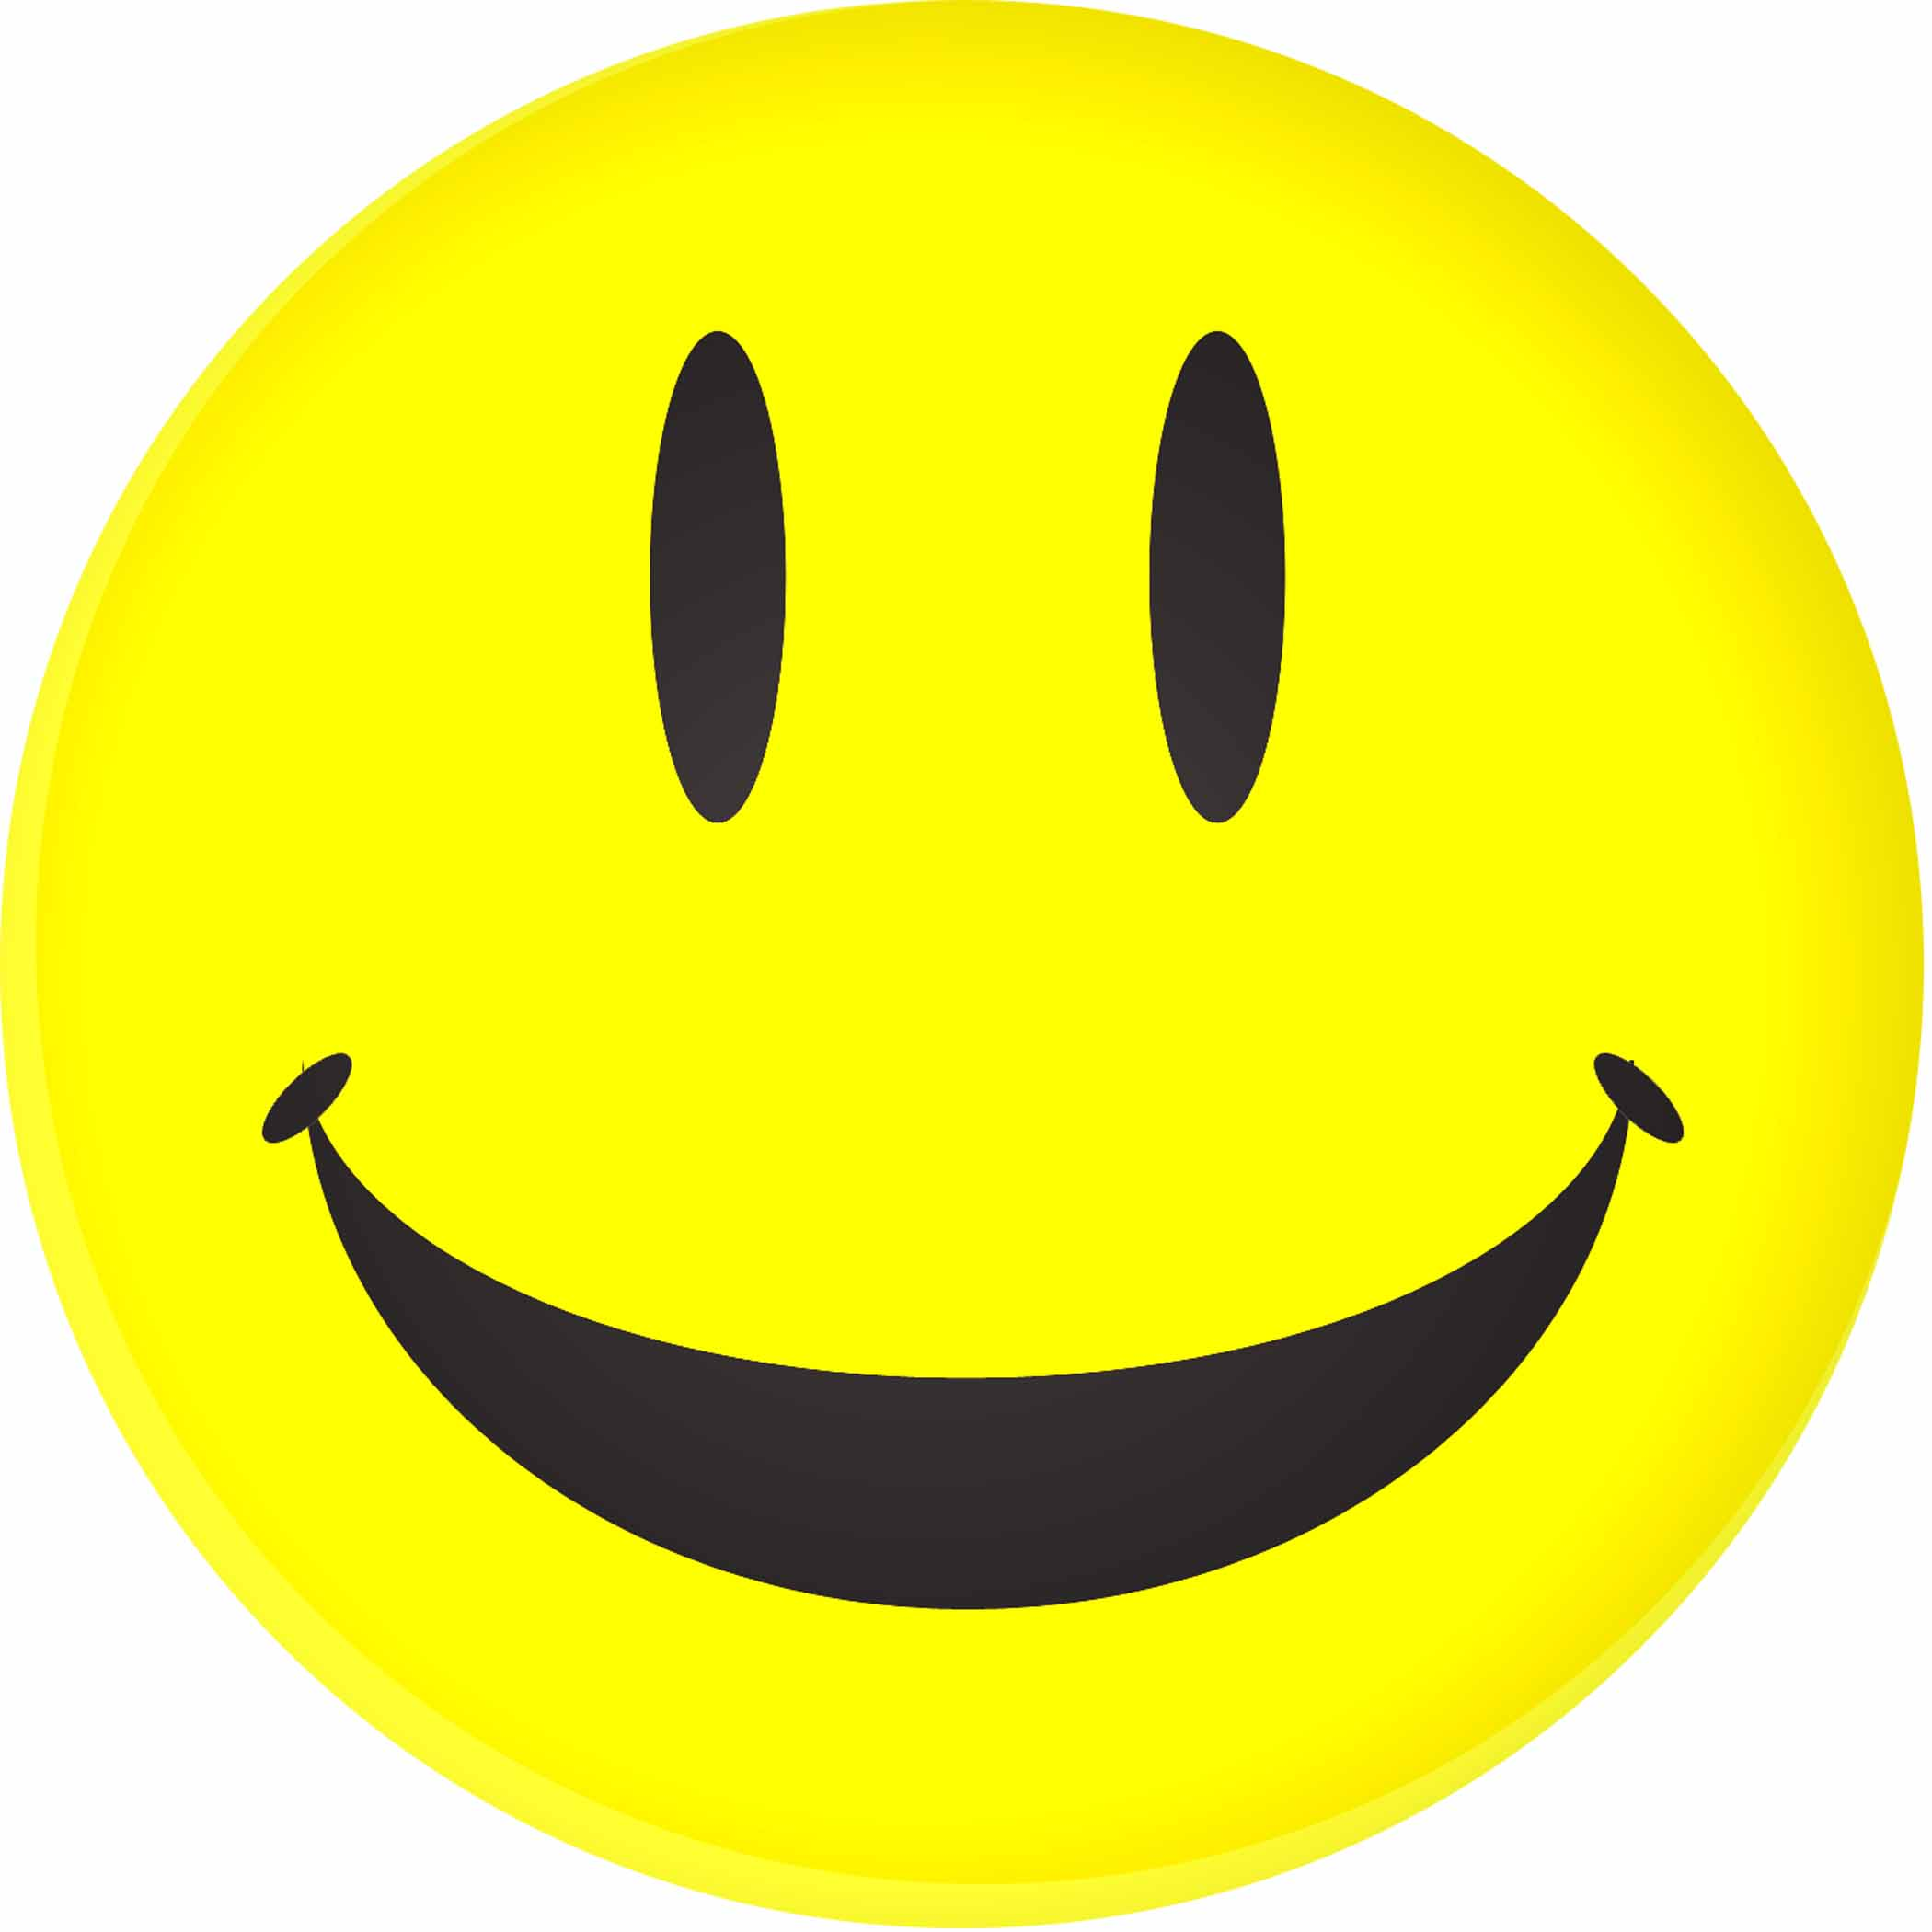 2100x2100 Smileys Clipart Animated Smiling Faces